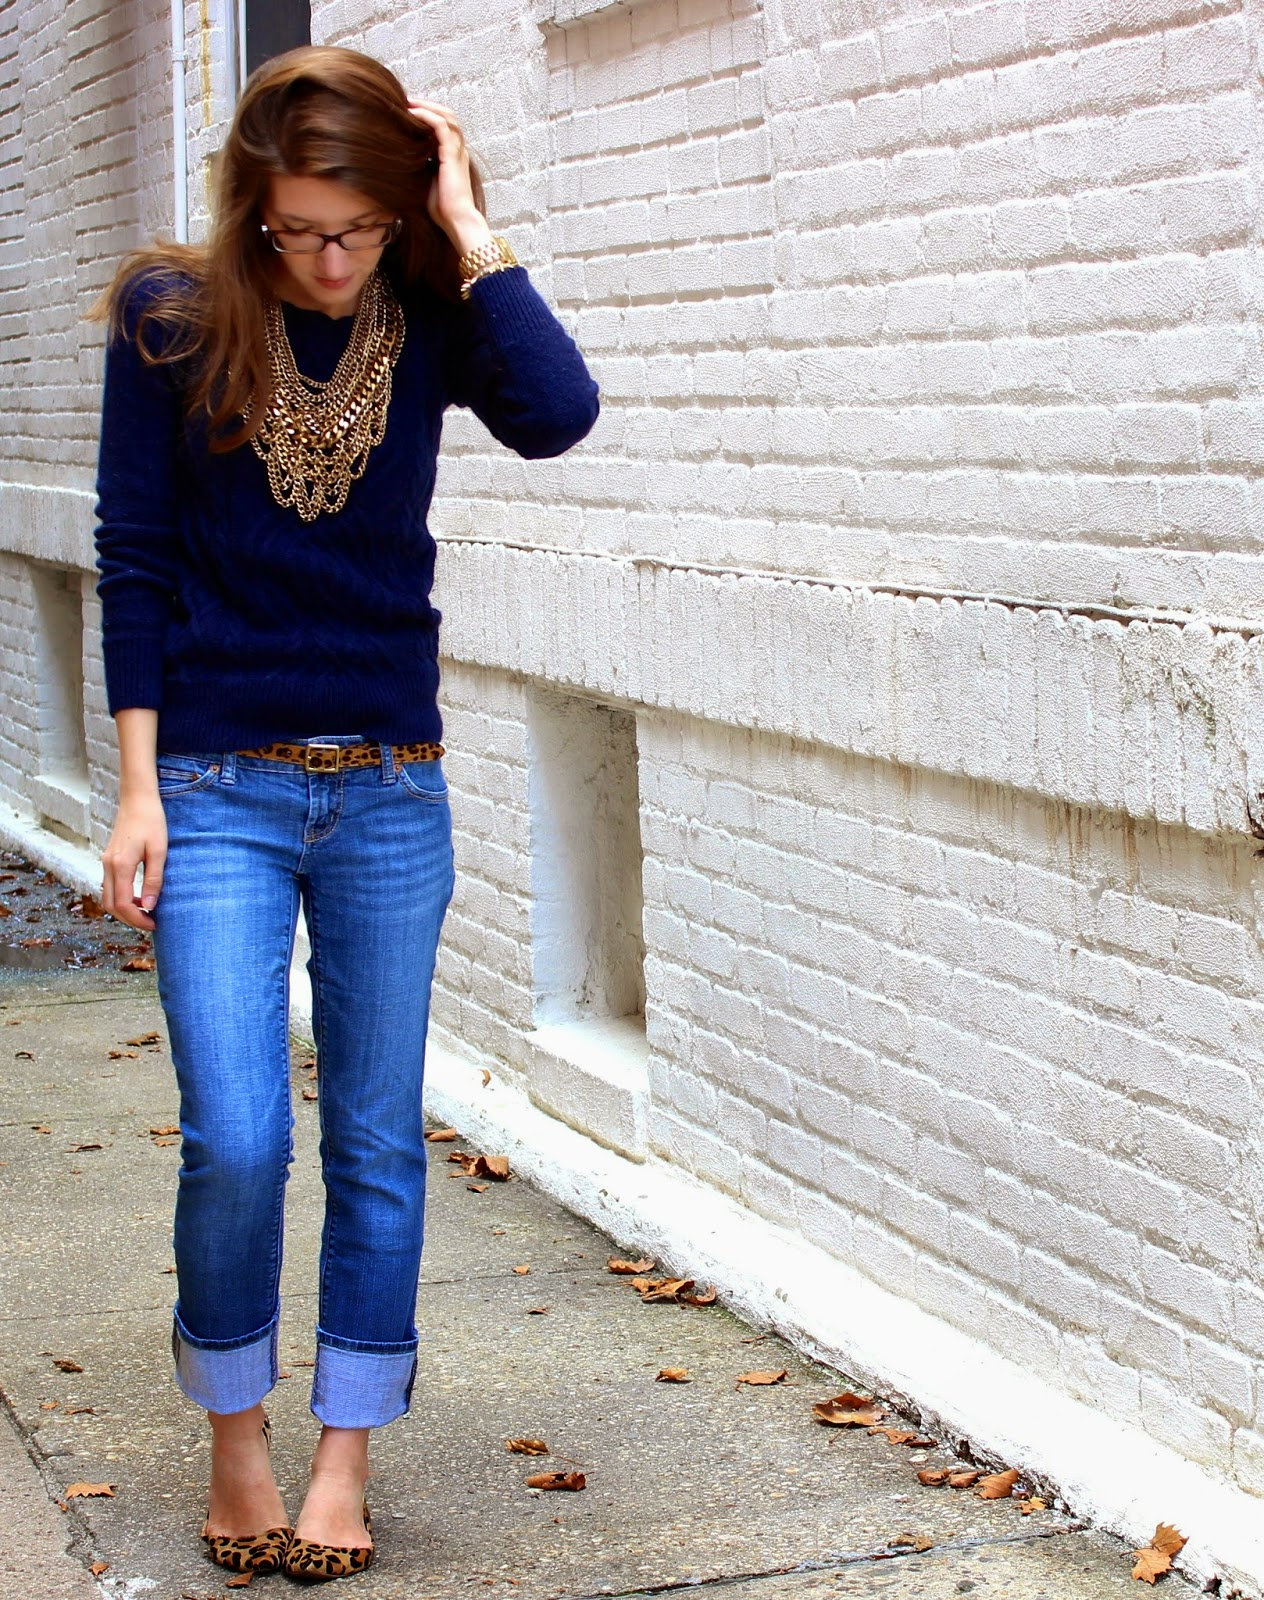 Fall Preview Friday || Leopard + Chunky Knits